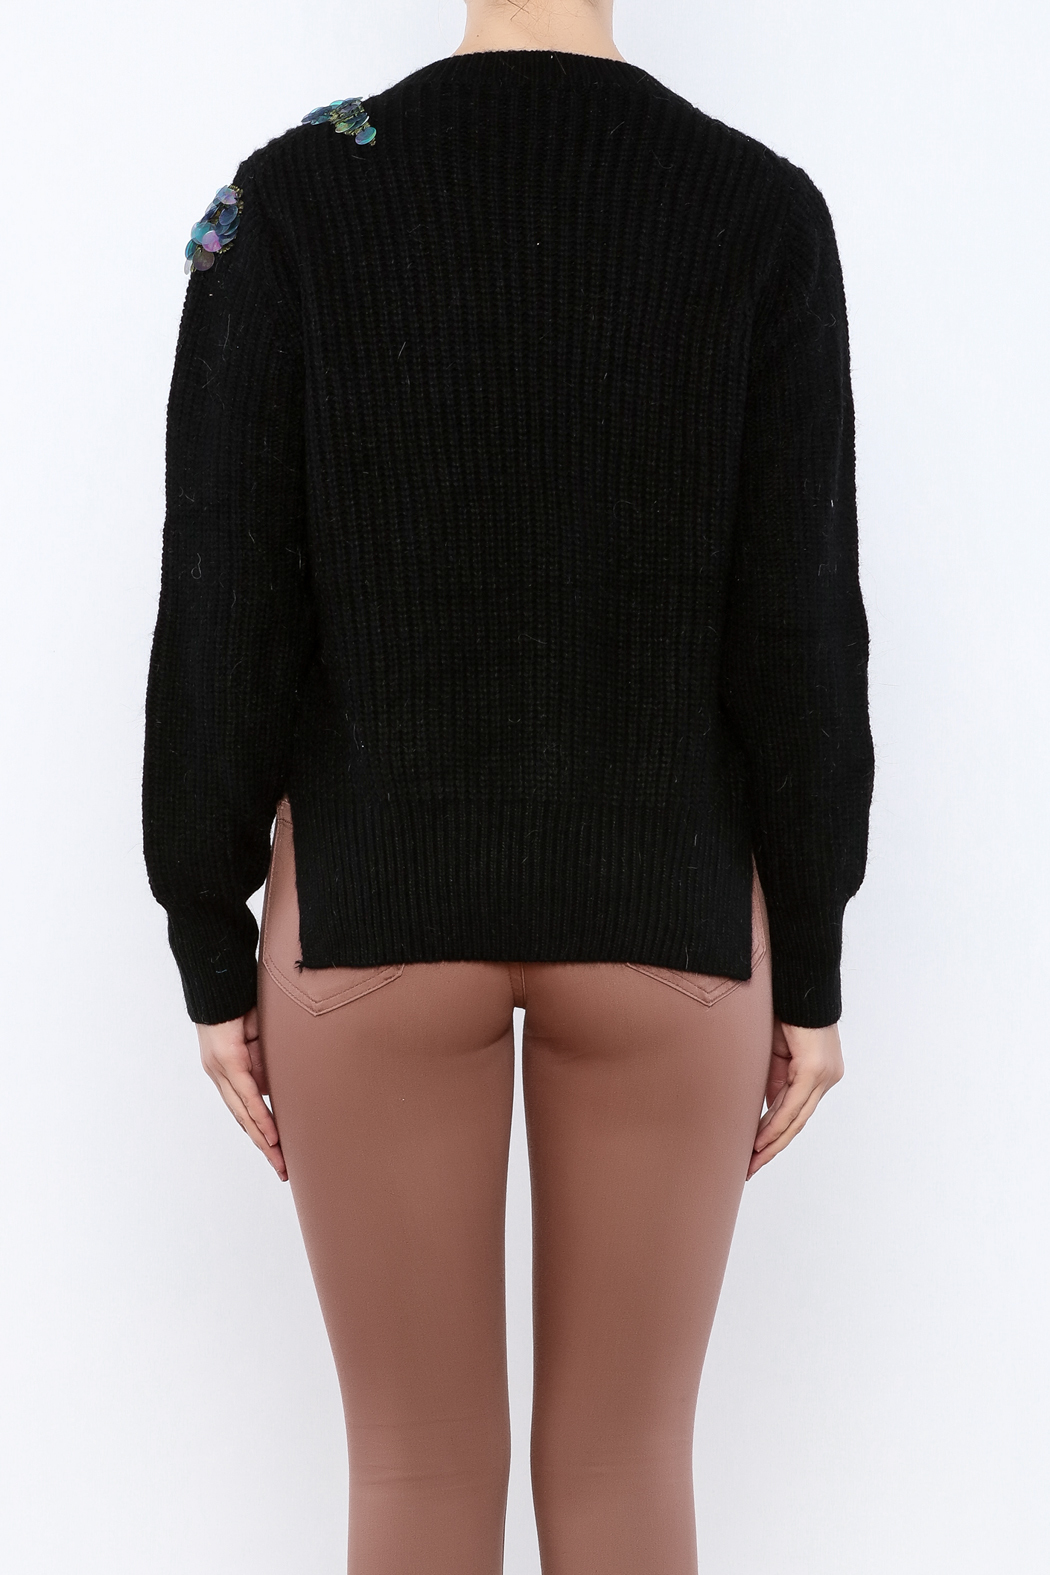 THINK CLOSET Sequined Starling Sweater - Back Cropped Image